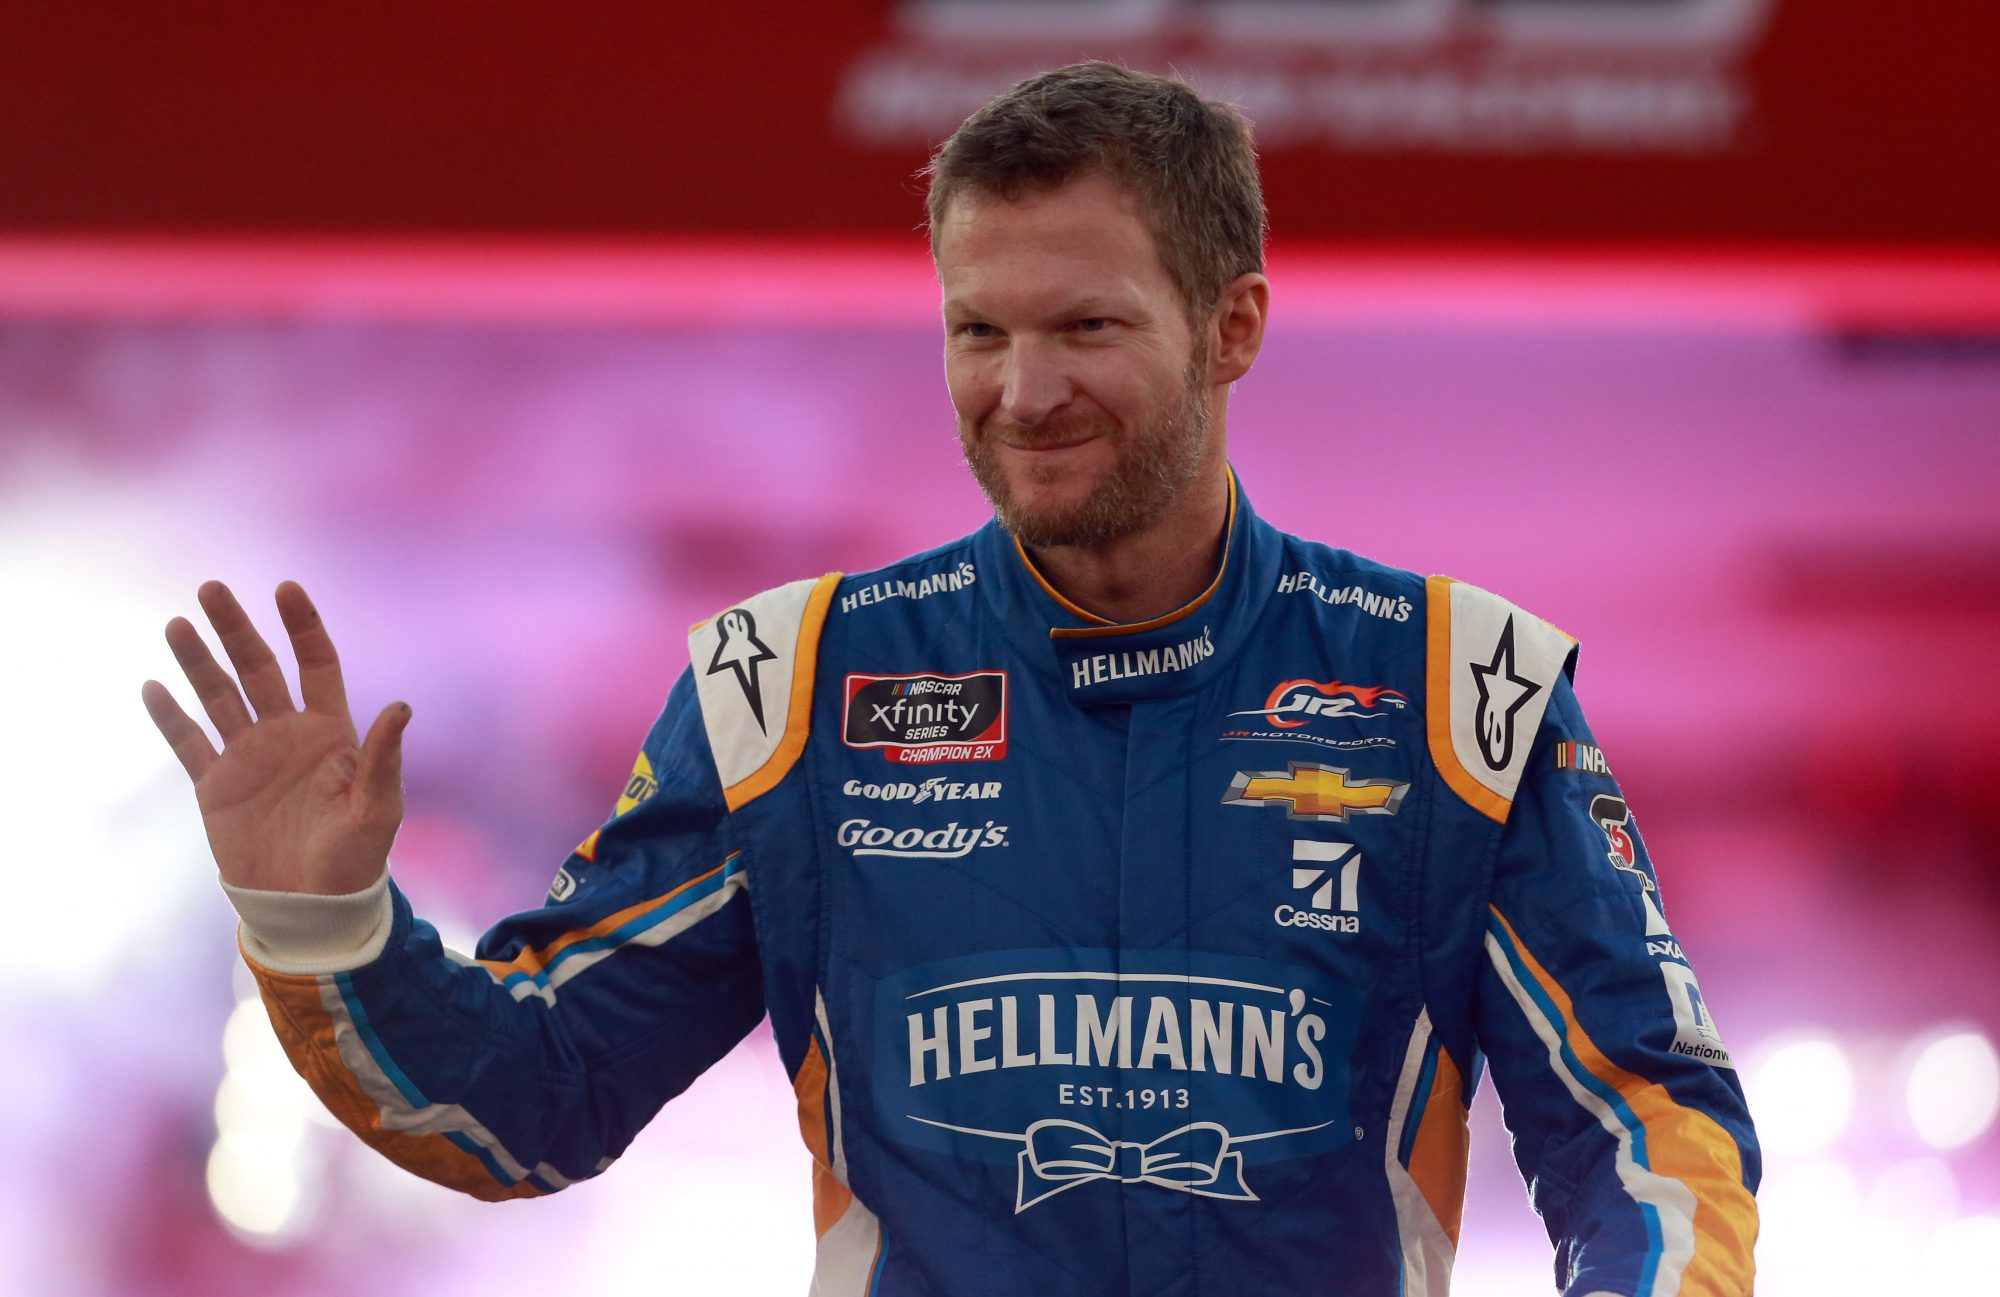 Dale Earnhardt Jr. Still Plans to Race Again at Darlington and Honor His Late Father